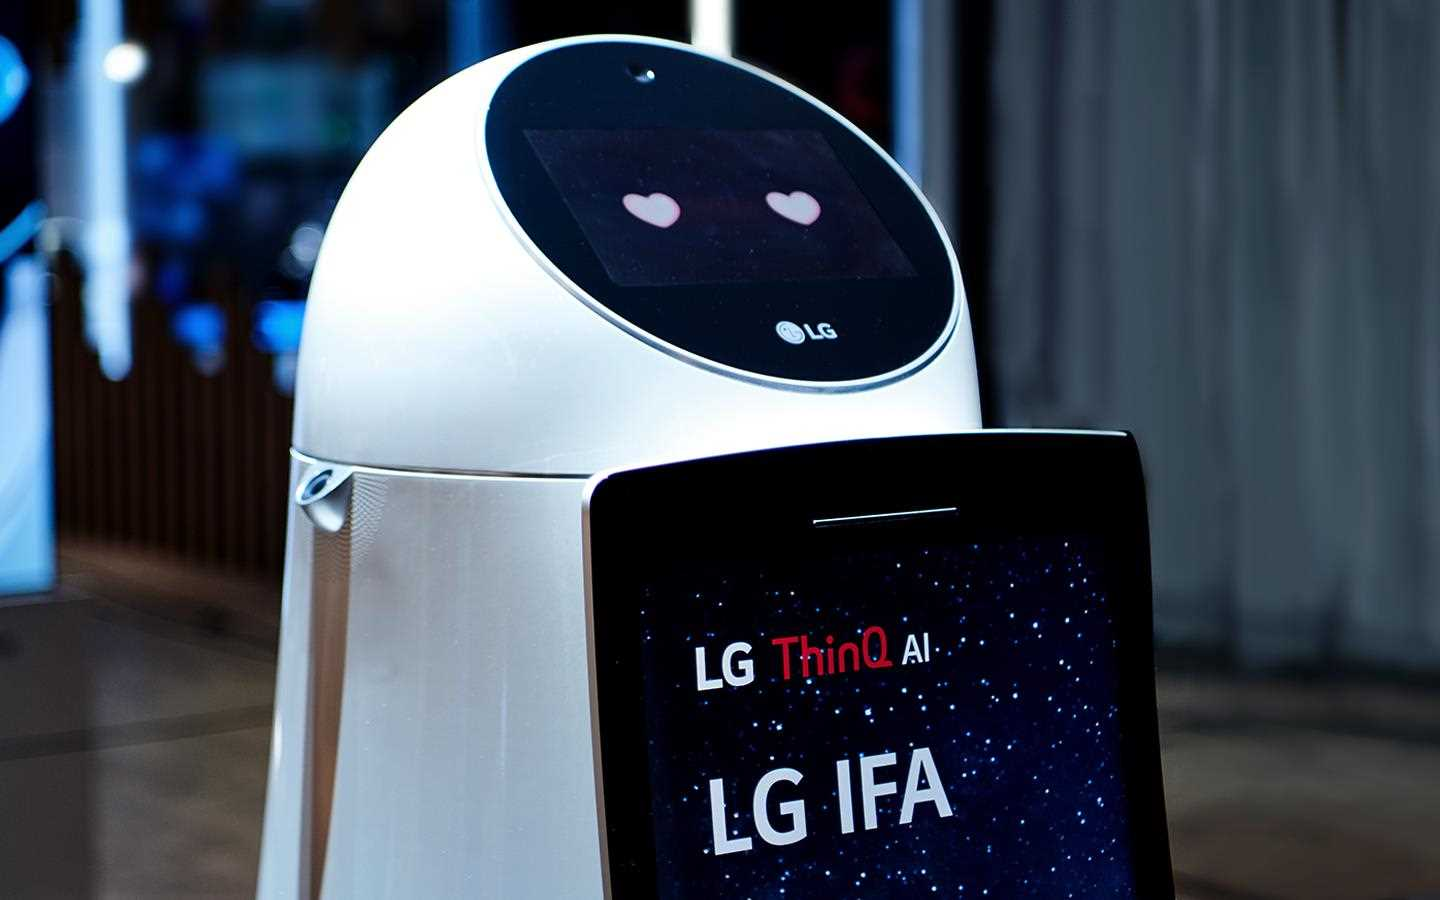 IFA 2018: CLOi GuideBot on show LG's AI-focused exhibition